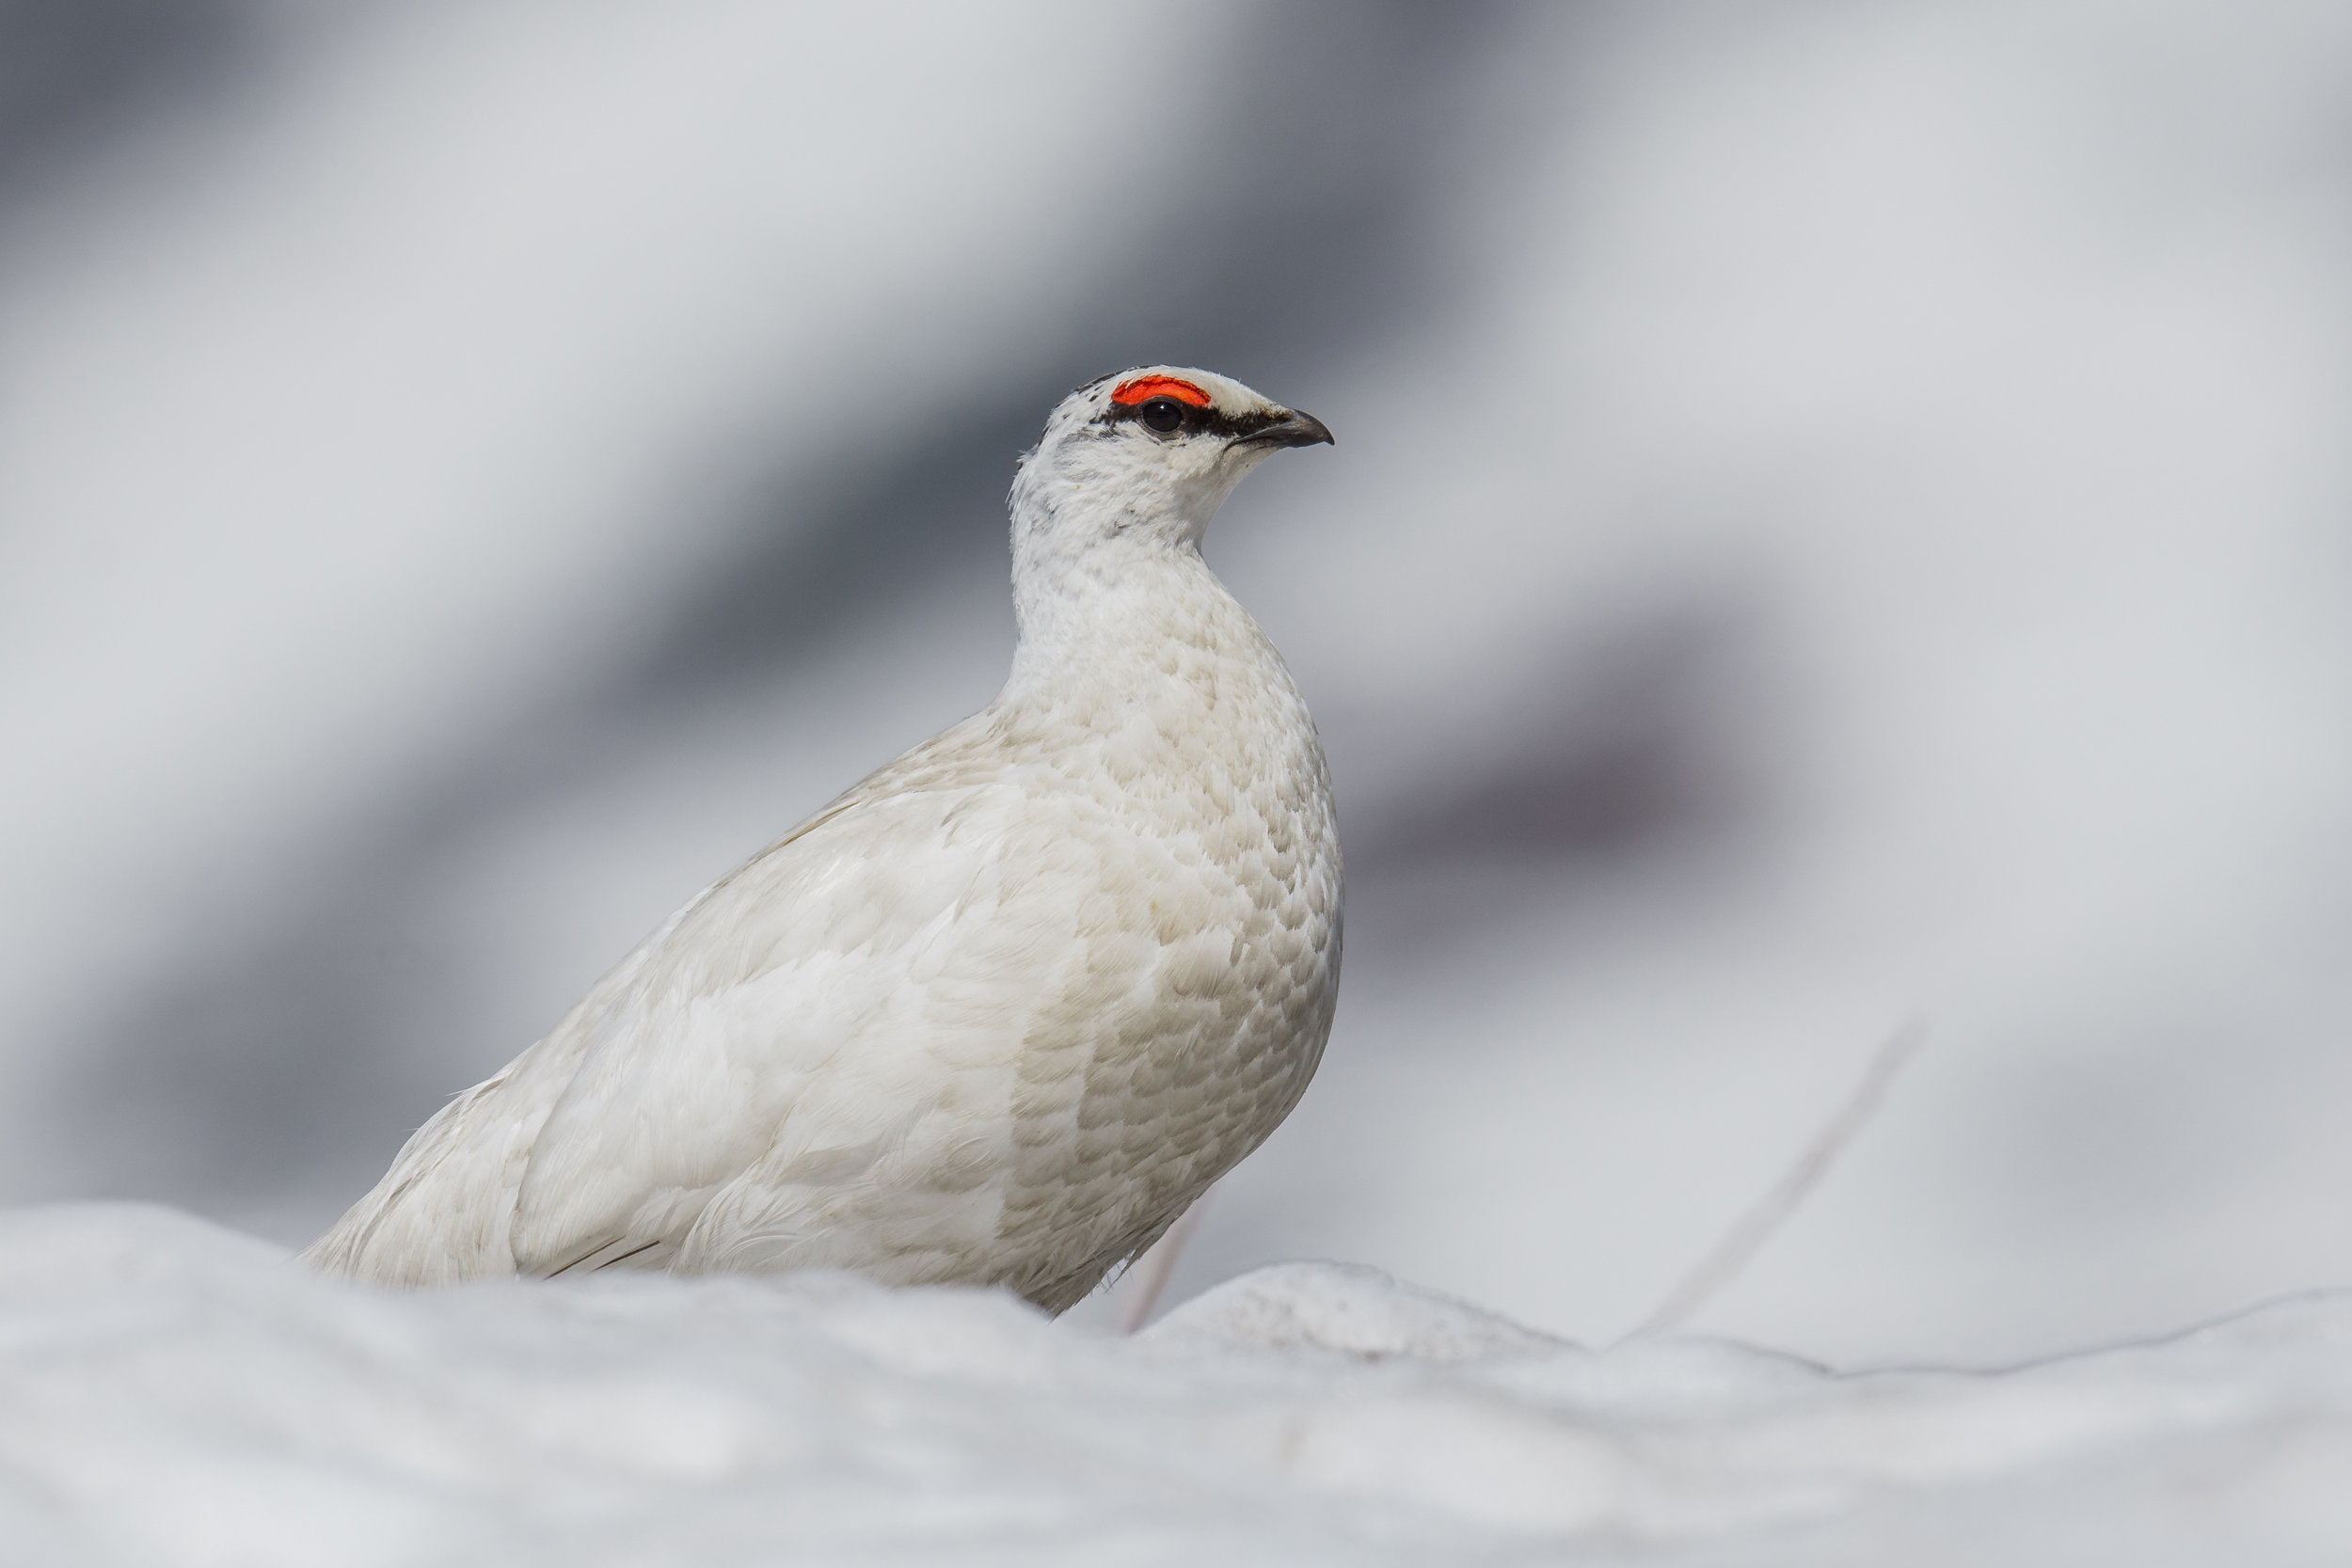 Rock Ptarmigan (Lagopus muta), a surprise, which I saw out the window from the back seat. I shouted stop, quick stop and my drop off to find this. Many photos.